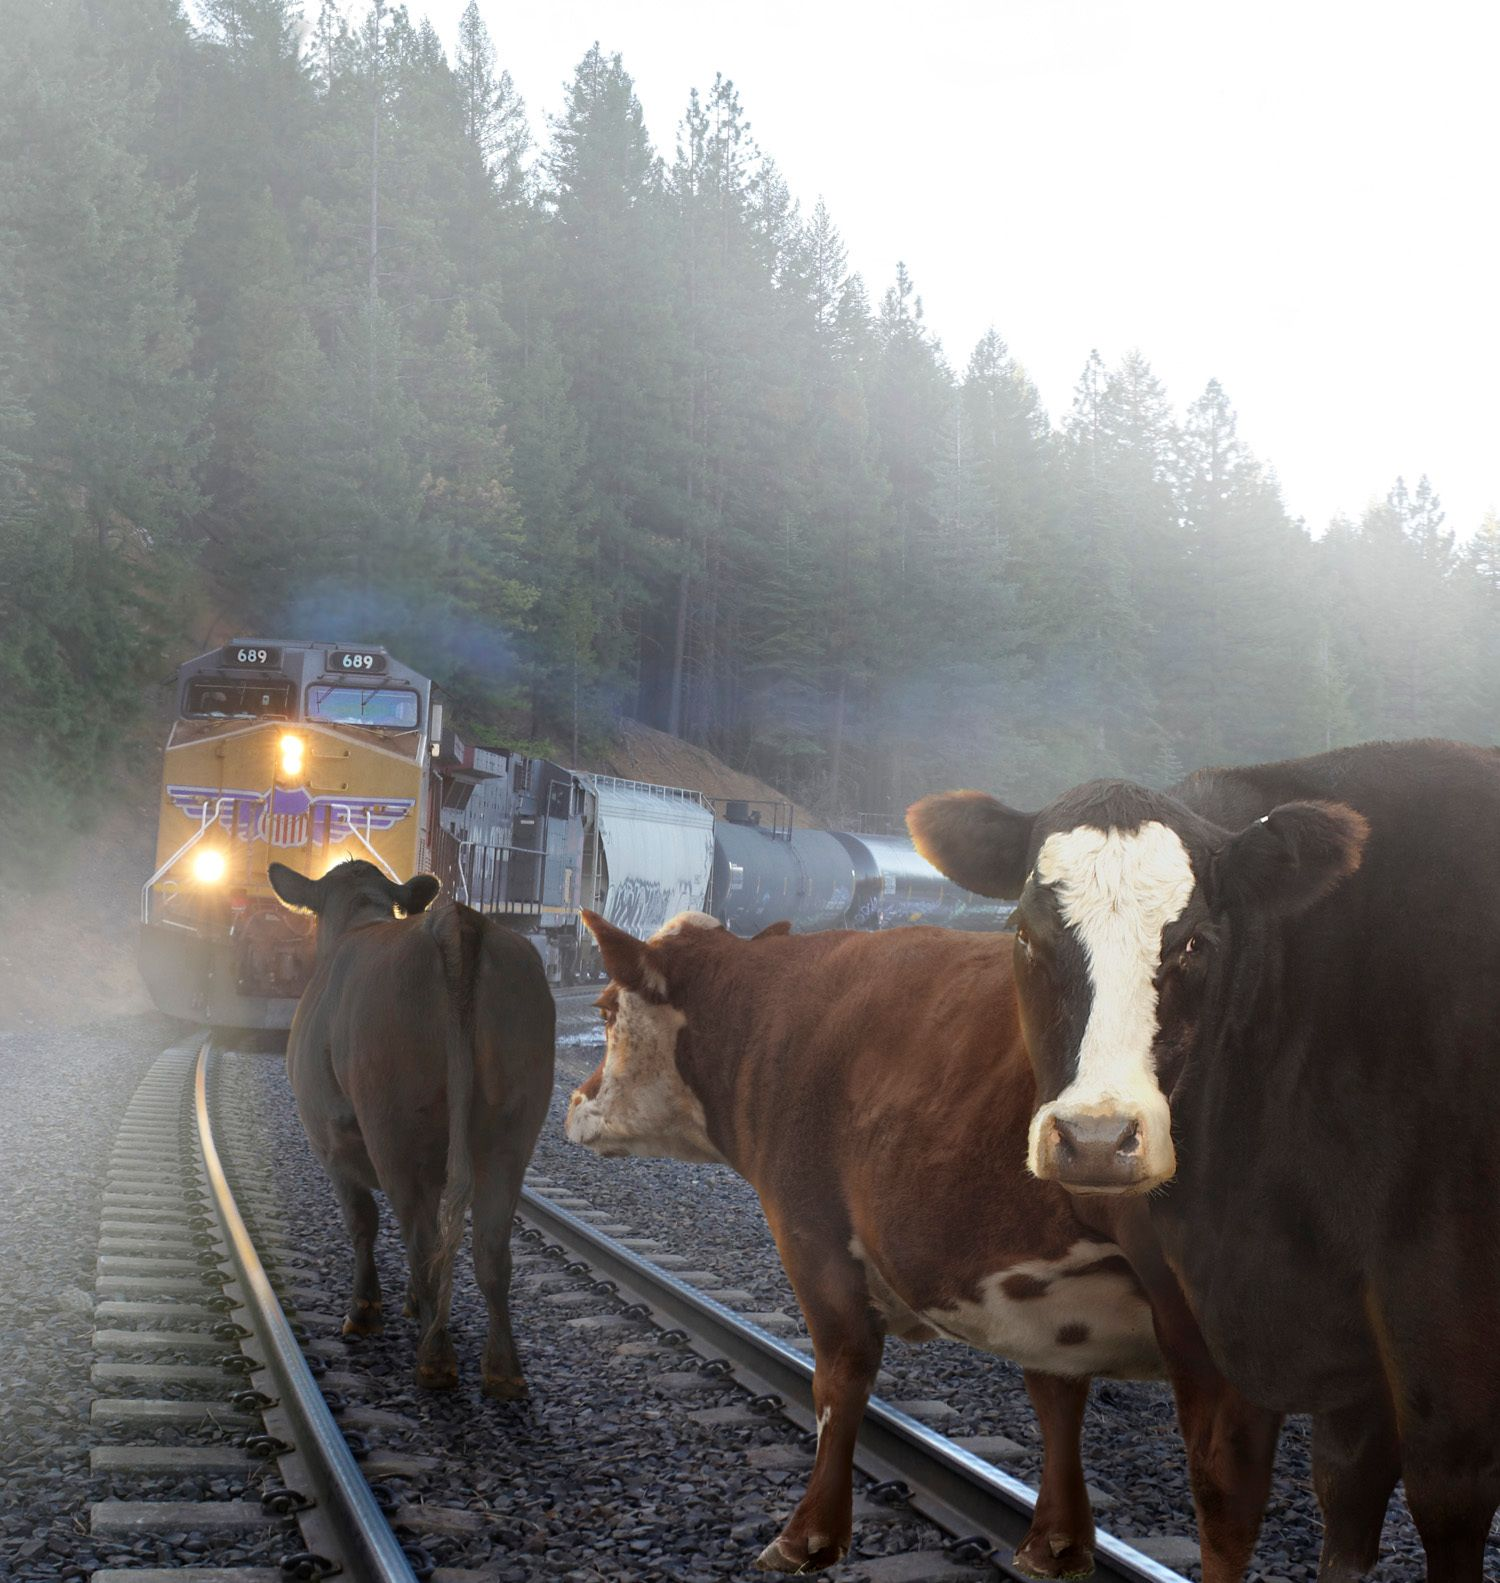 1cows_trains_no_car_blur.jpg